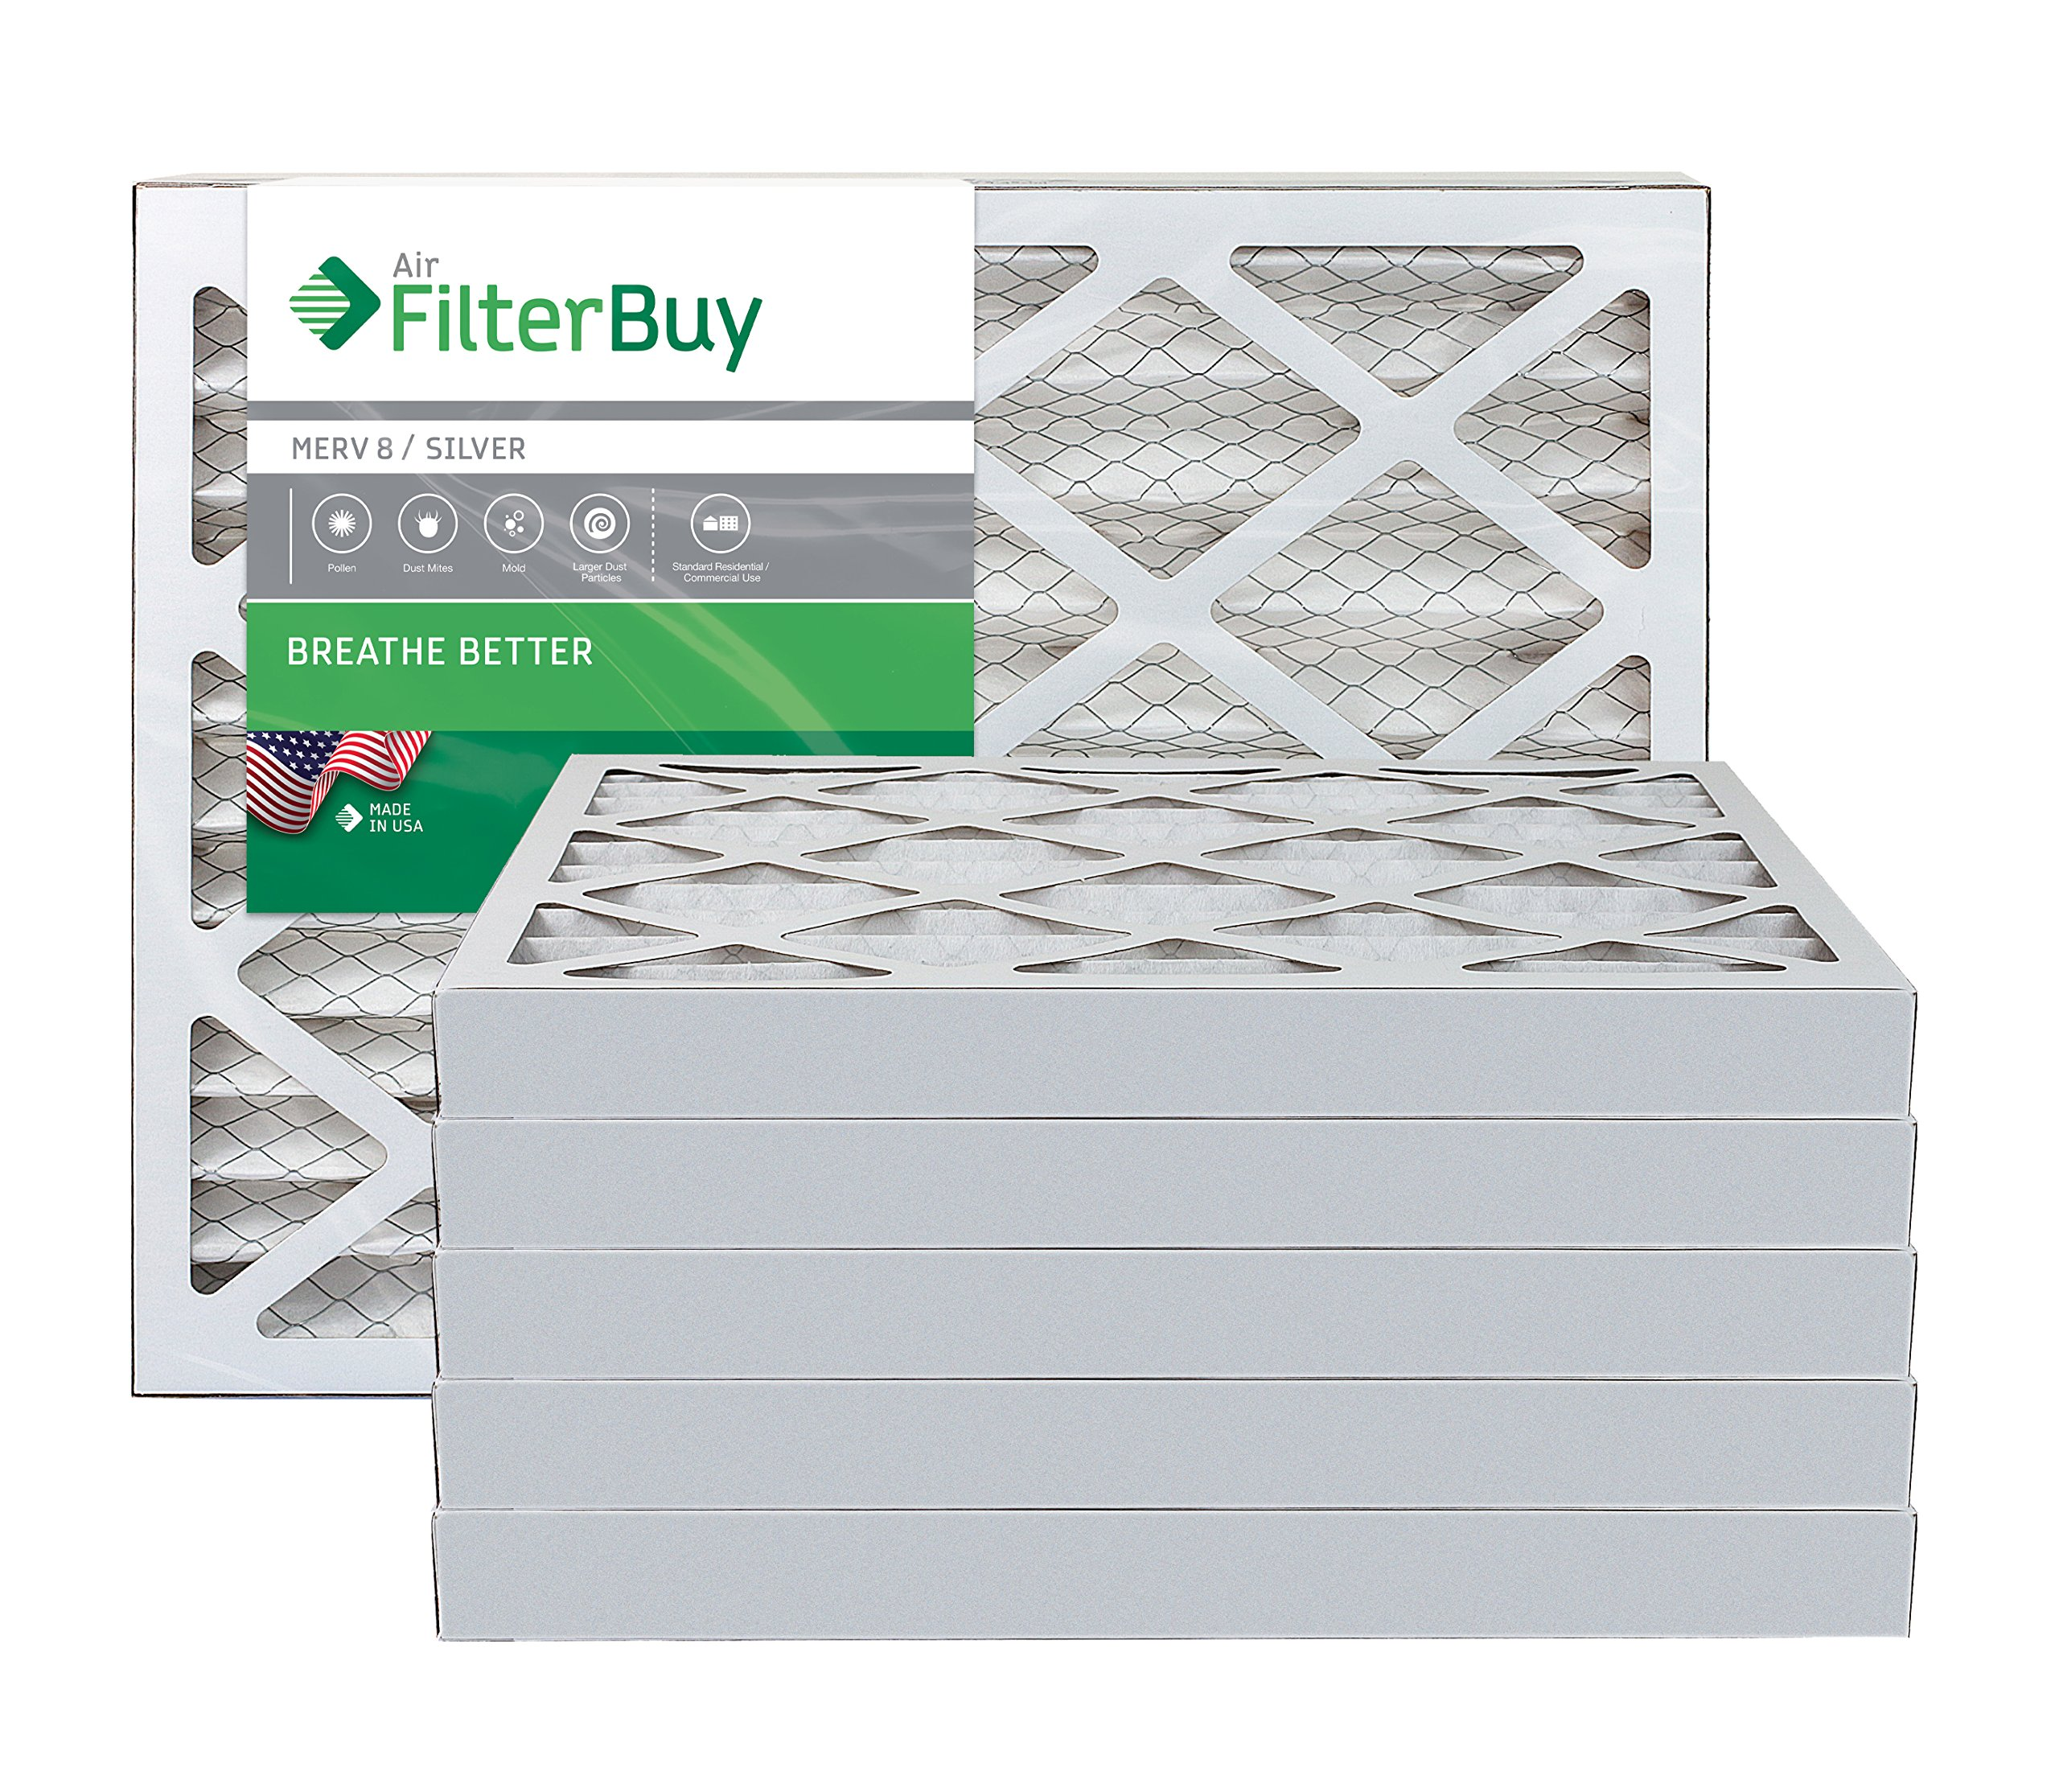 FilterBuy 12x27x2 MERV 8 Pleated AC Furnace Air Filter, (Pack of 6 Filters), 12x27x2 – Silver